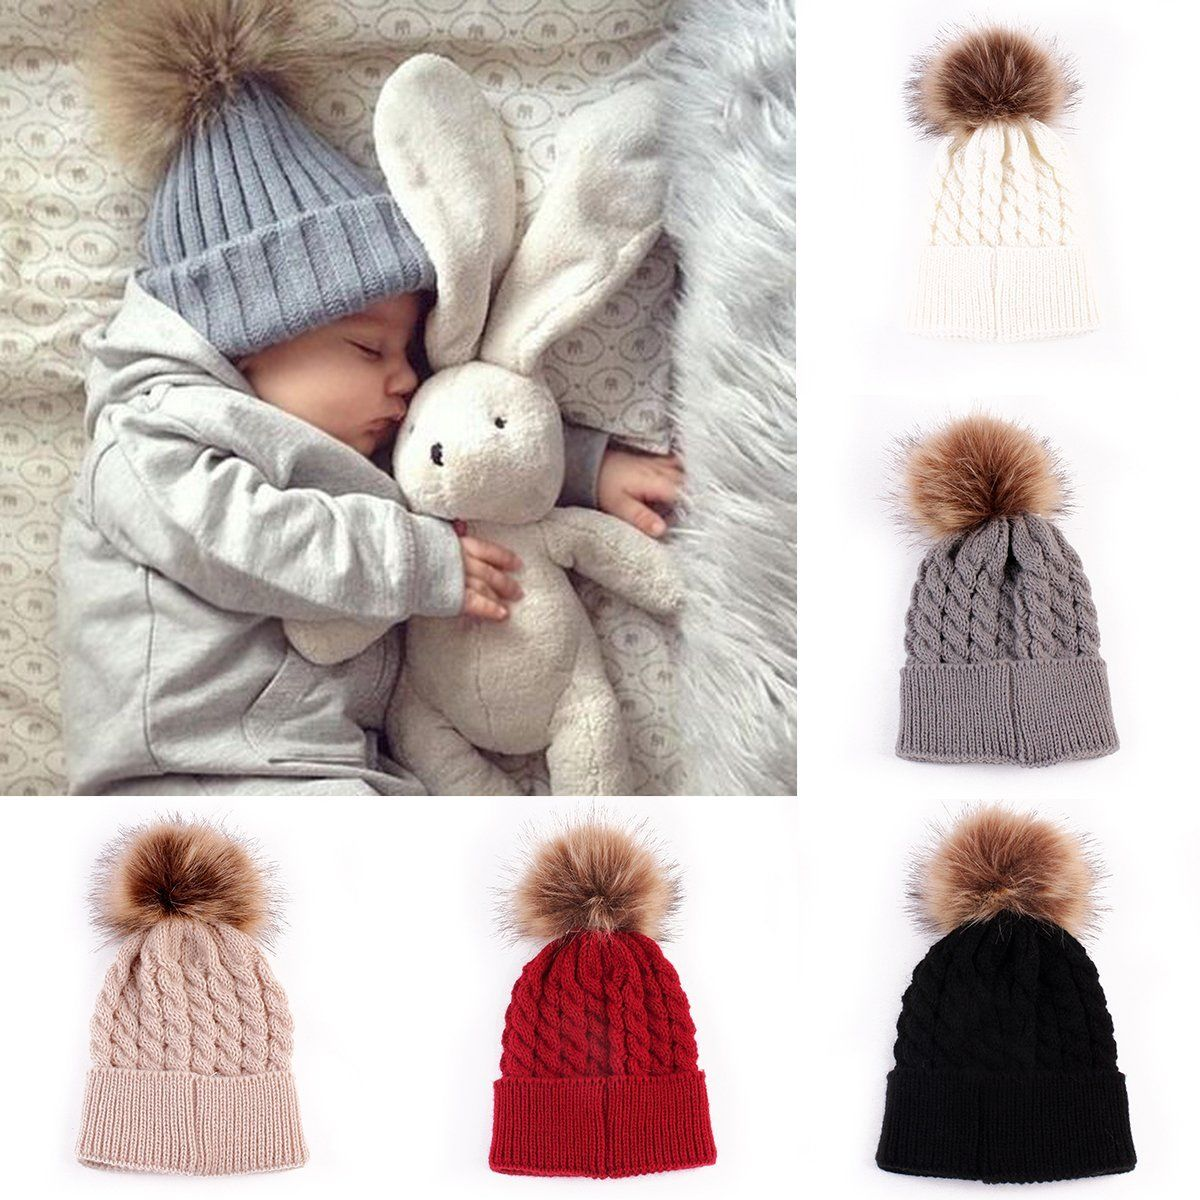 eed6035a4 Infant Winter Warm Knit Crochet Caps Baby Beanie Hat Toddler Kid Faux Fur  pom pom Knit skullies ski Cap 0-3 years